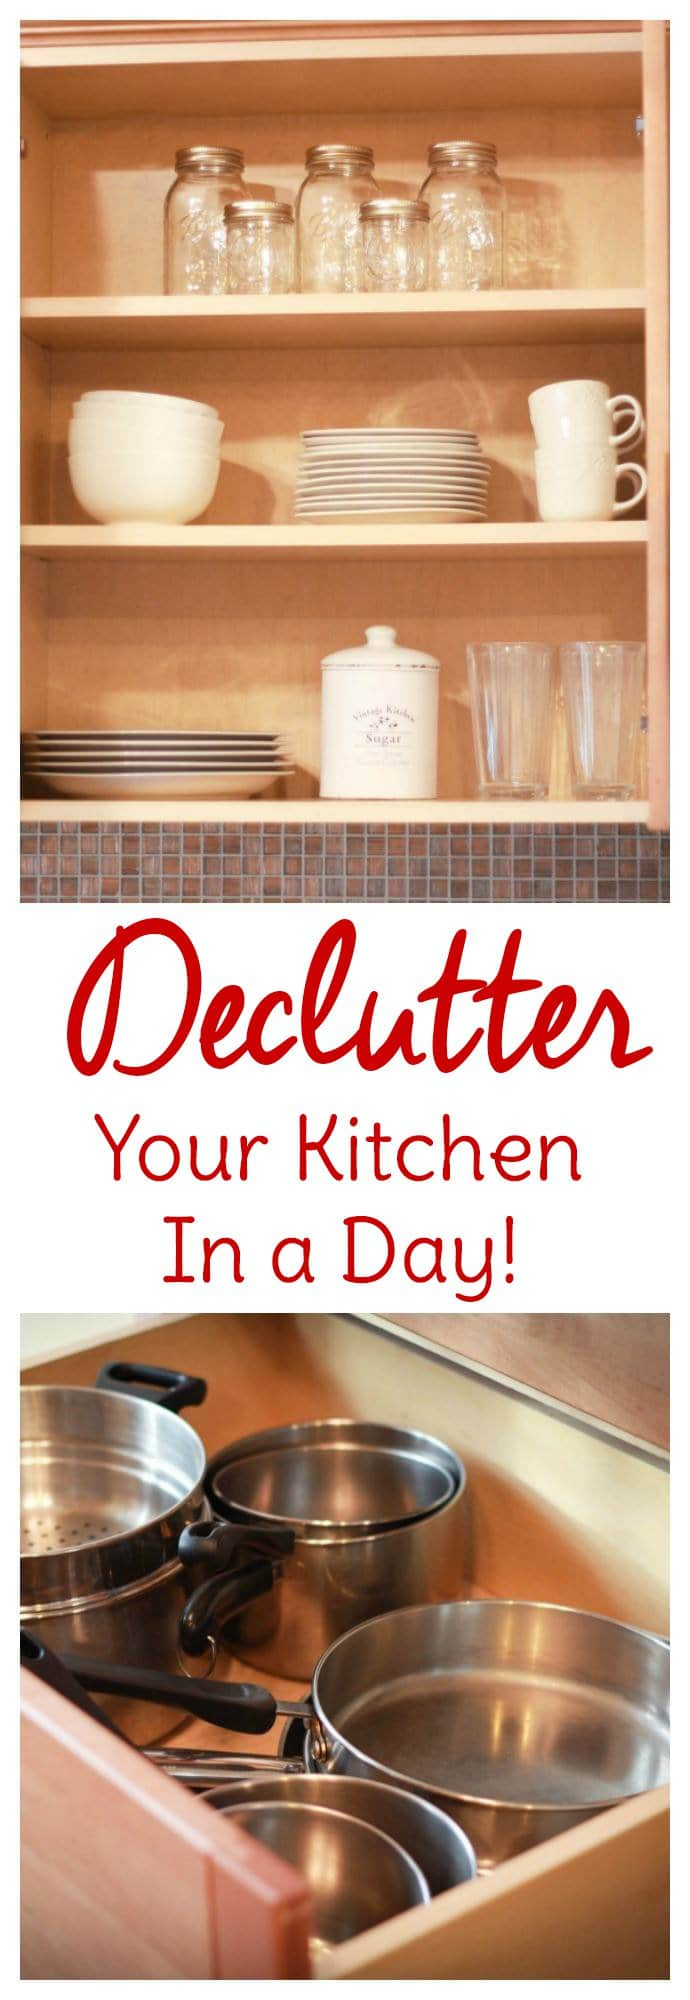 Ways To Declutter Your Kitchen In A Day Sweet T Makes Three